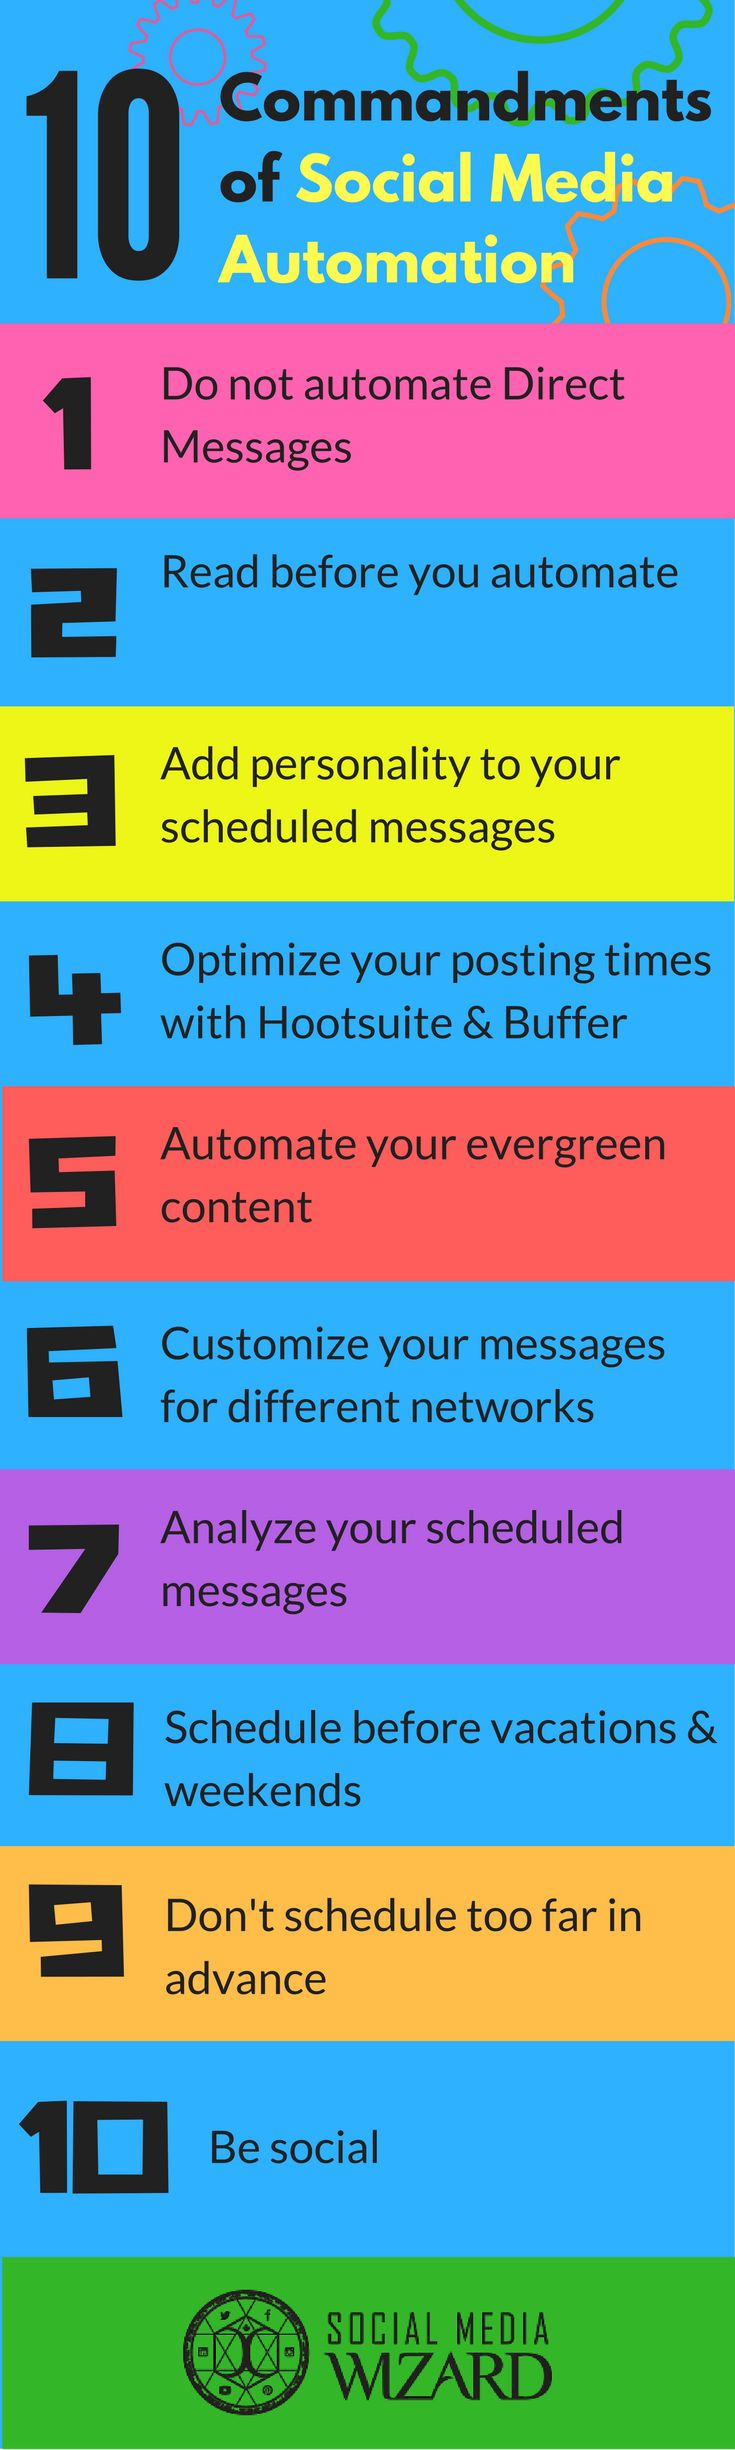 10 Commandments of Social Media AutomationThe best social media professionals delegate. We delegate to the suite of fantastic apps and software that do a great job of allowing us to maintain the appearance of always being online without actually having to be.  Social media automation is great and saves me a ton of time each week, but most people get it wrong. They take social media automation way too far which can hurt their reputation.